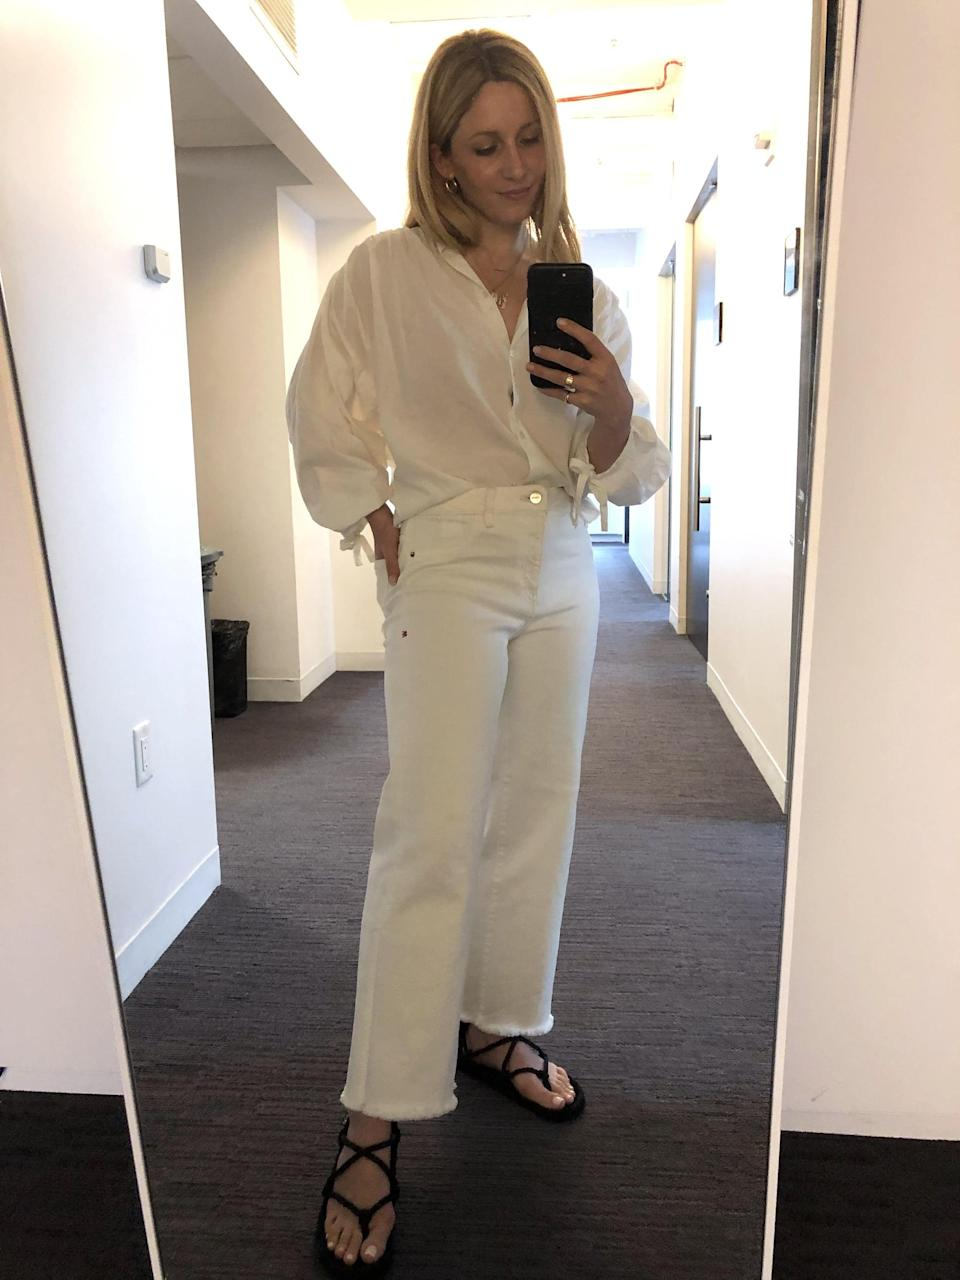 """<p>""""I've had an up-and-down relationship with white jeans. There have been stretchy styles I loved that I later saw pictures of myself in and realized they were not so flattering and more rigid cuts I've tried that never quite felt comfortable enough to wear more than once or twice. Finally, I came across <a href=""""https://www.warpweftworld.com/collections/white-denim-00-24/products/icn-wide-leg-ecru"""" rel=""""nofollow noopener"""" target=""""_blank"""" data-ylk=""""slk:this pair by Warp + Weft"""" class=""""link rapid-noclick-resp"""">this pair by Warp + Weft</a>, which has an amazing size range for all body types. I found that this wide-leg silhouette flatters my shape well. It has stretch, but only enough to feel comfortable while being supportive enough up top where I need it. I'll definitely be wearing these all Summer long with everything from white tops to bohemian blouses and simple tank tops."""" - Laura Lajiness, senior editor, Fashion</p>"""